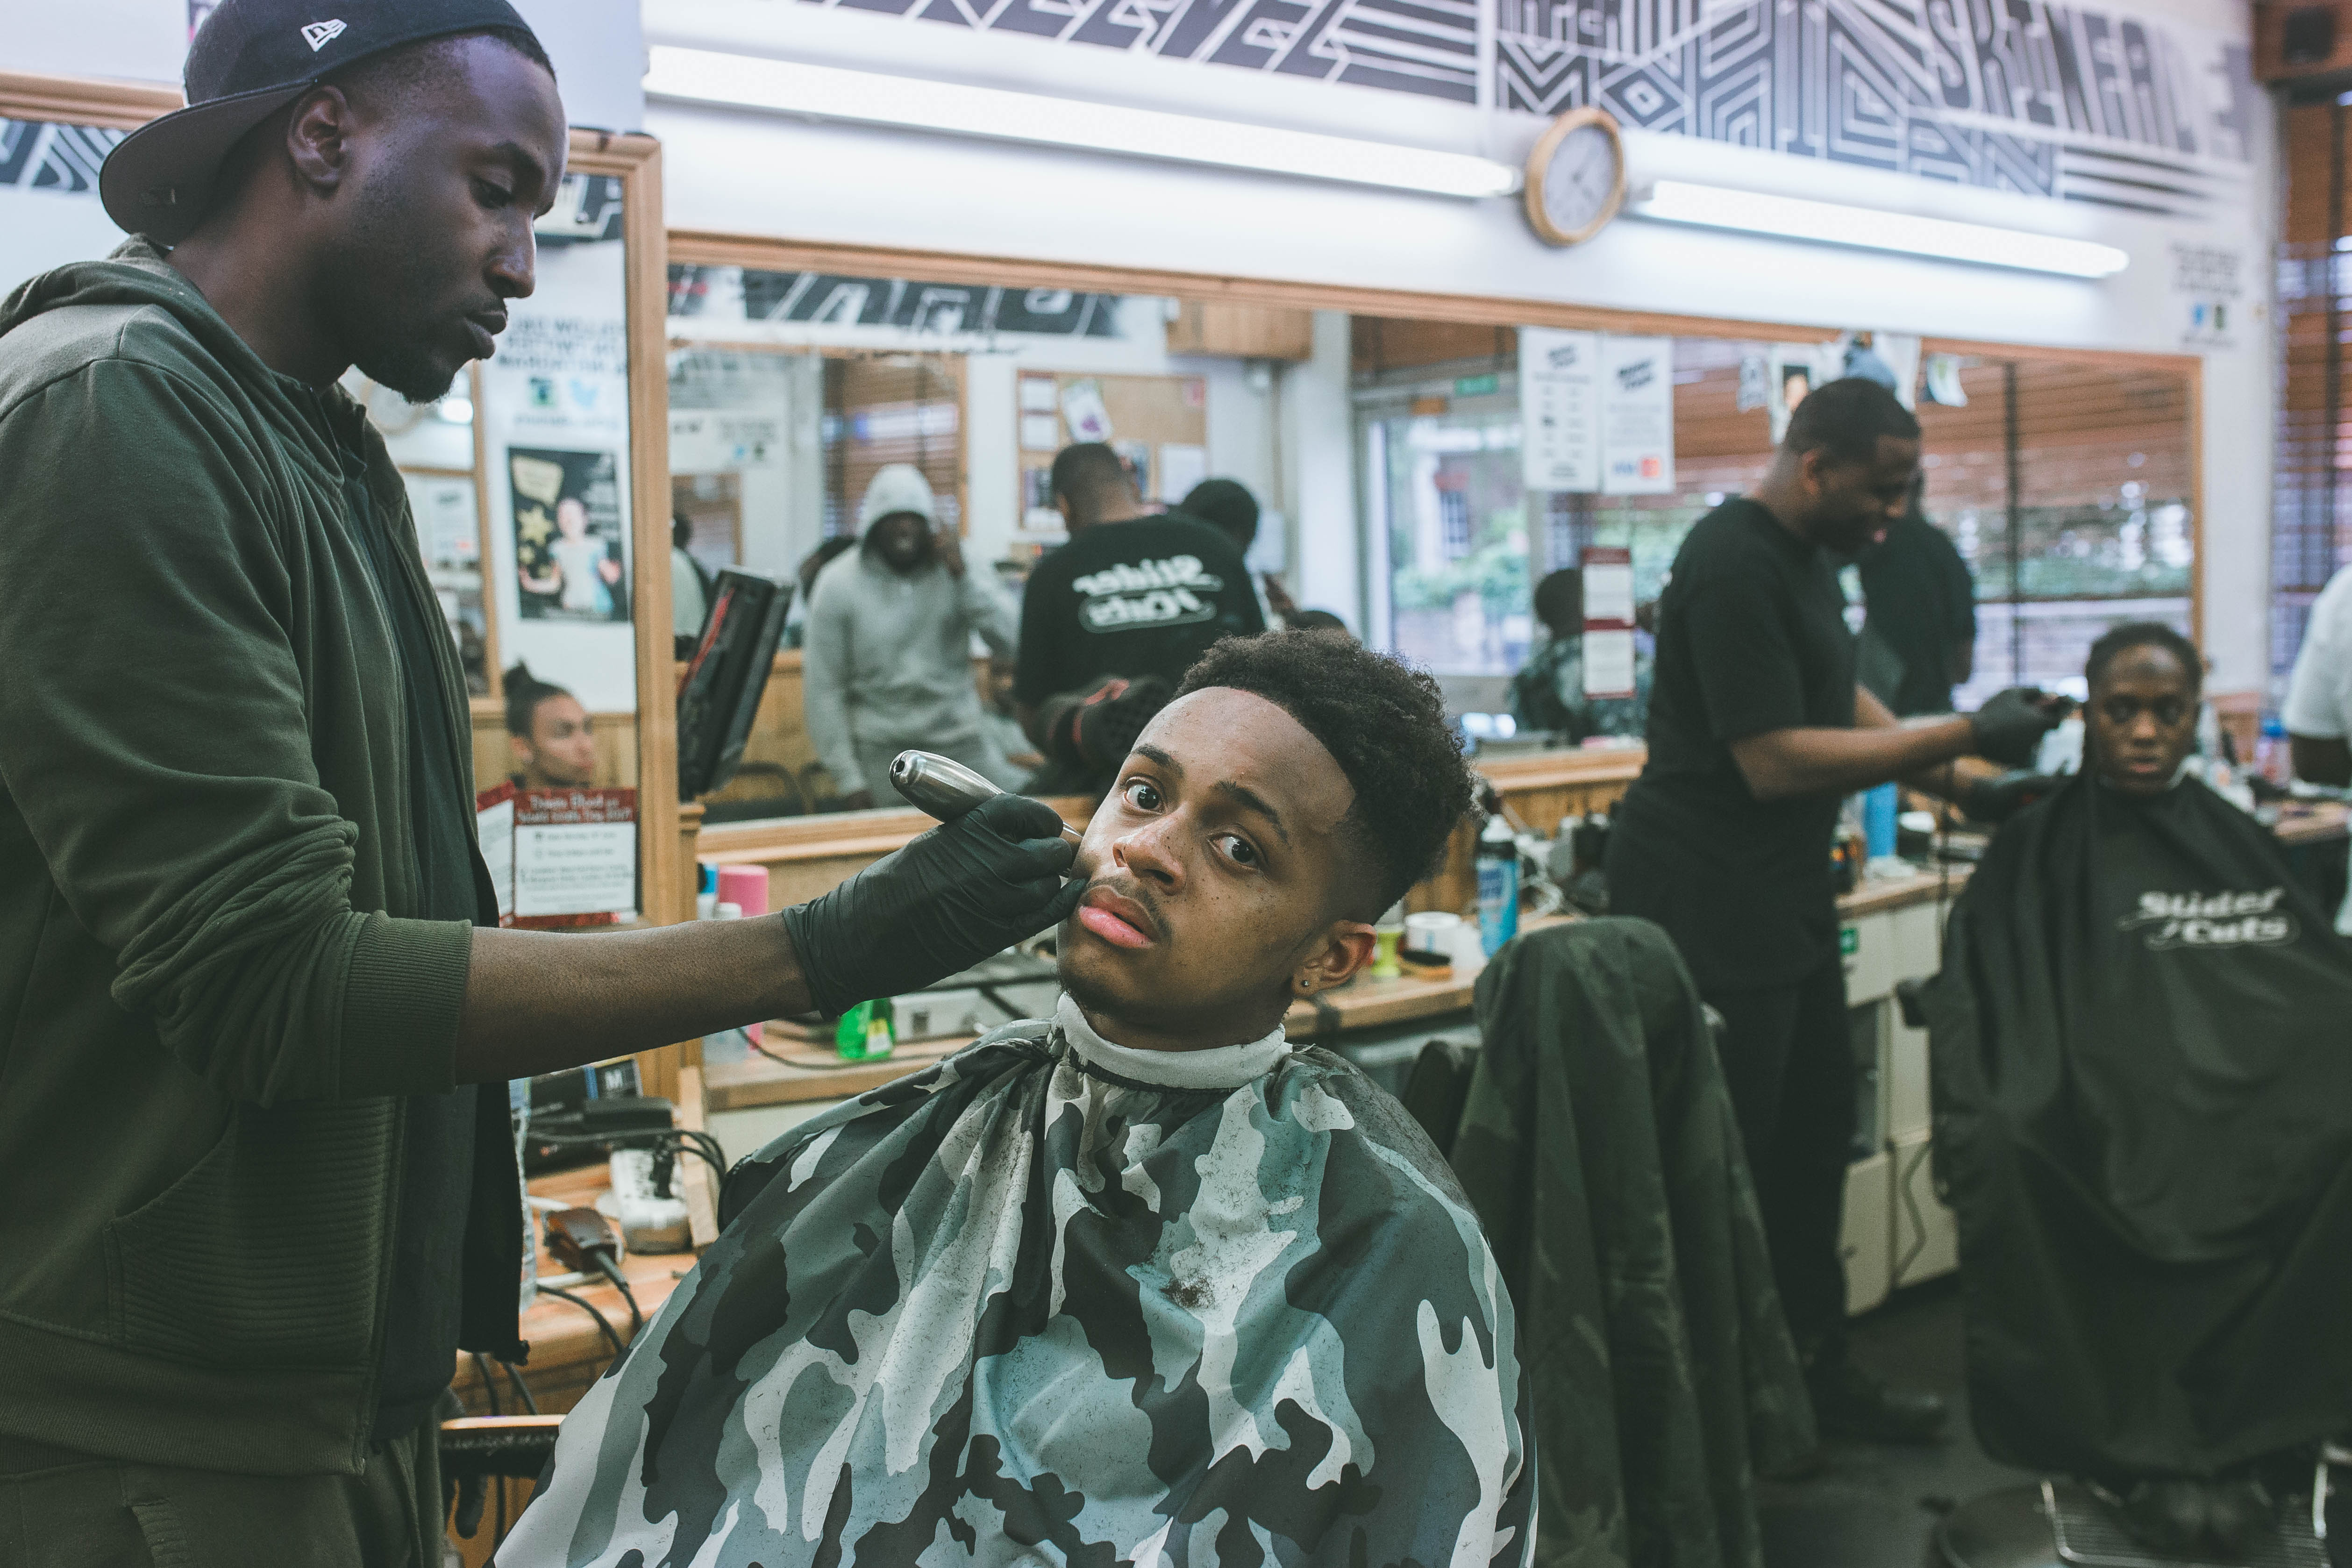 How The Barbershop Became A Bastion For The Black British Community